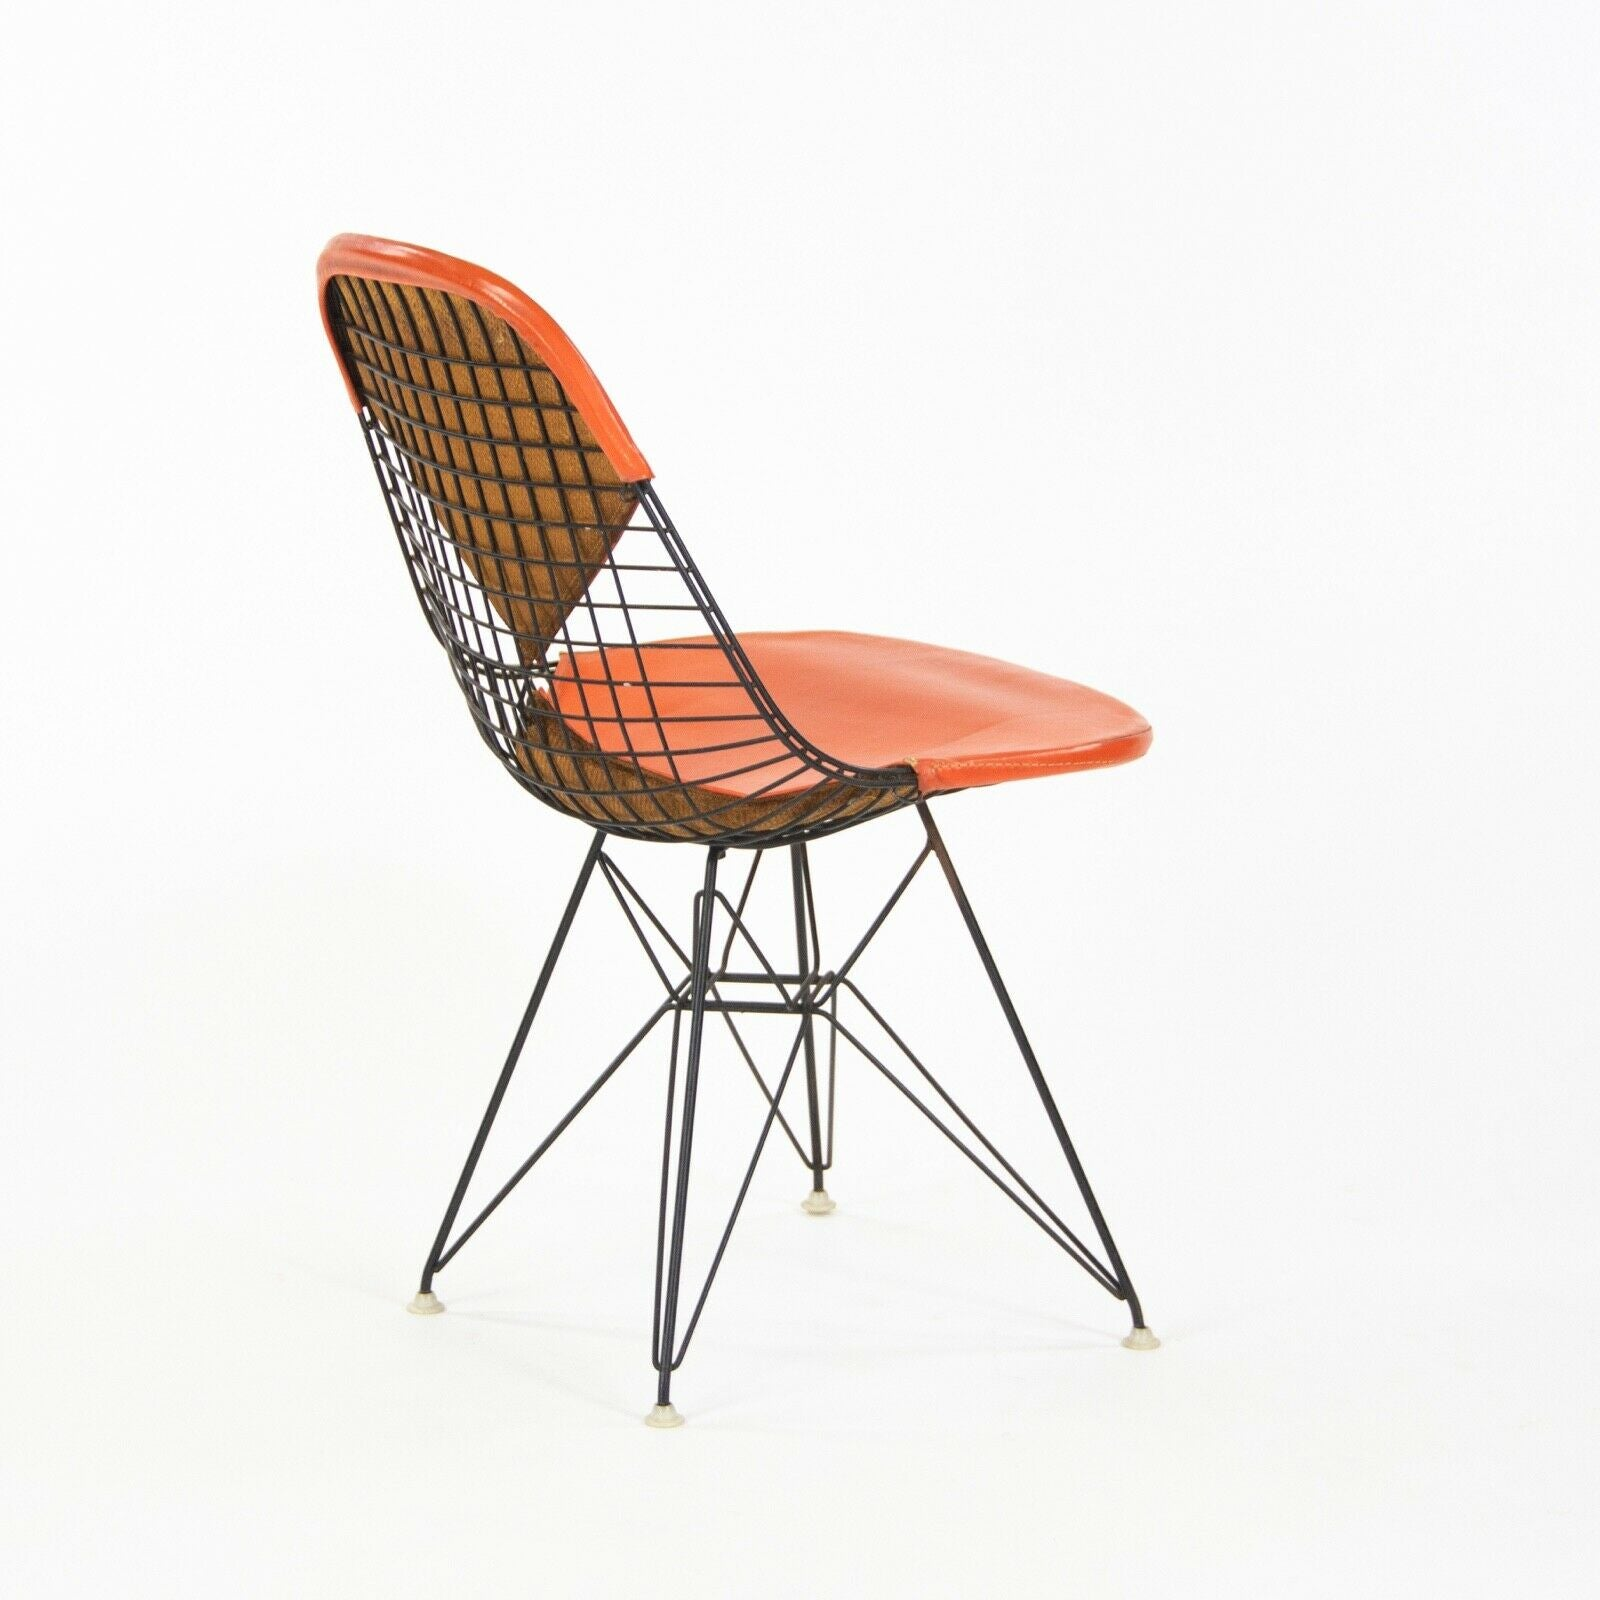 1956 Pair of Herman Miller Eames DKR-1 Wire Dining Chairs w/ Orange Bikini Pads